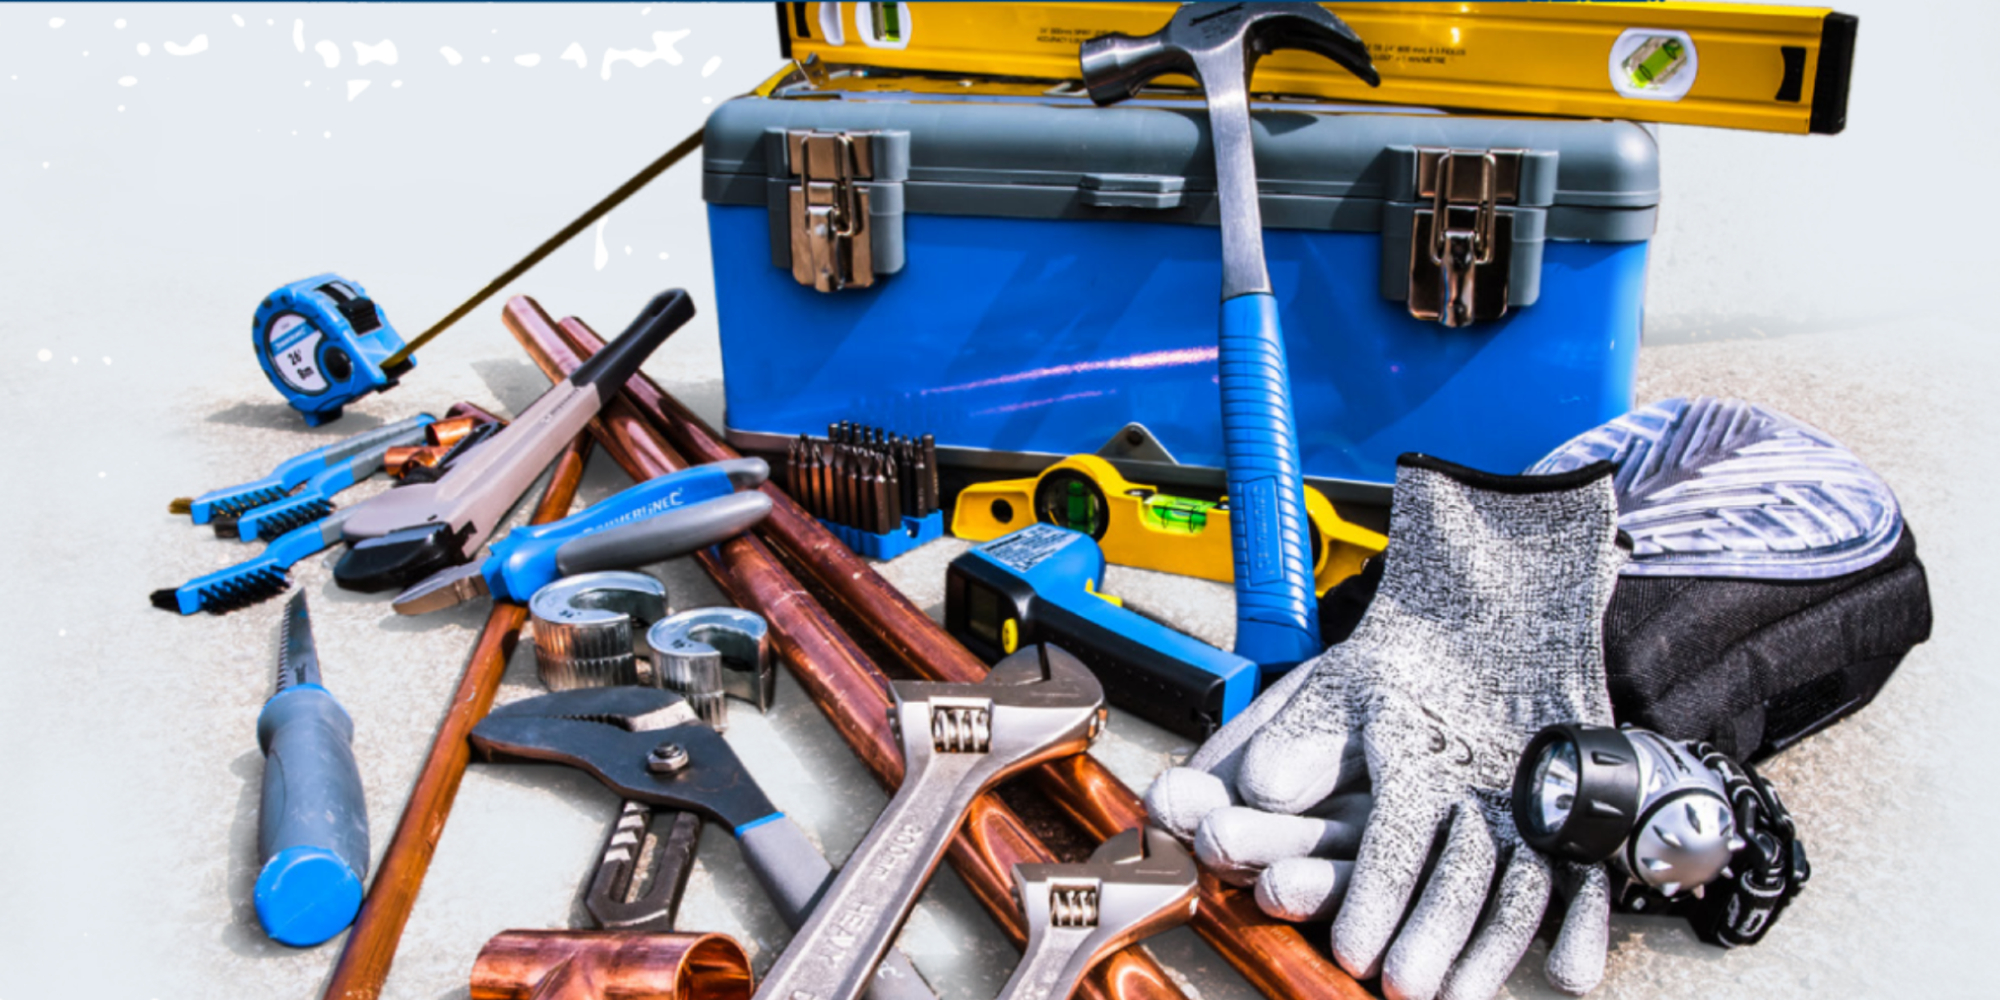 Silverline Tools - Personal Tool Kits